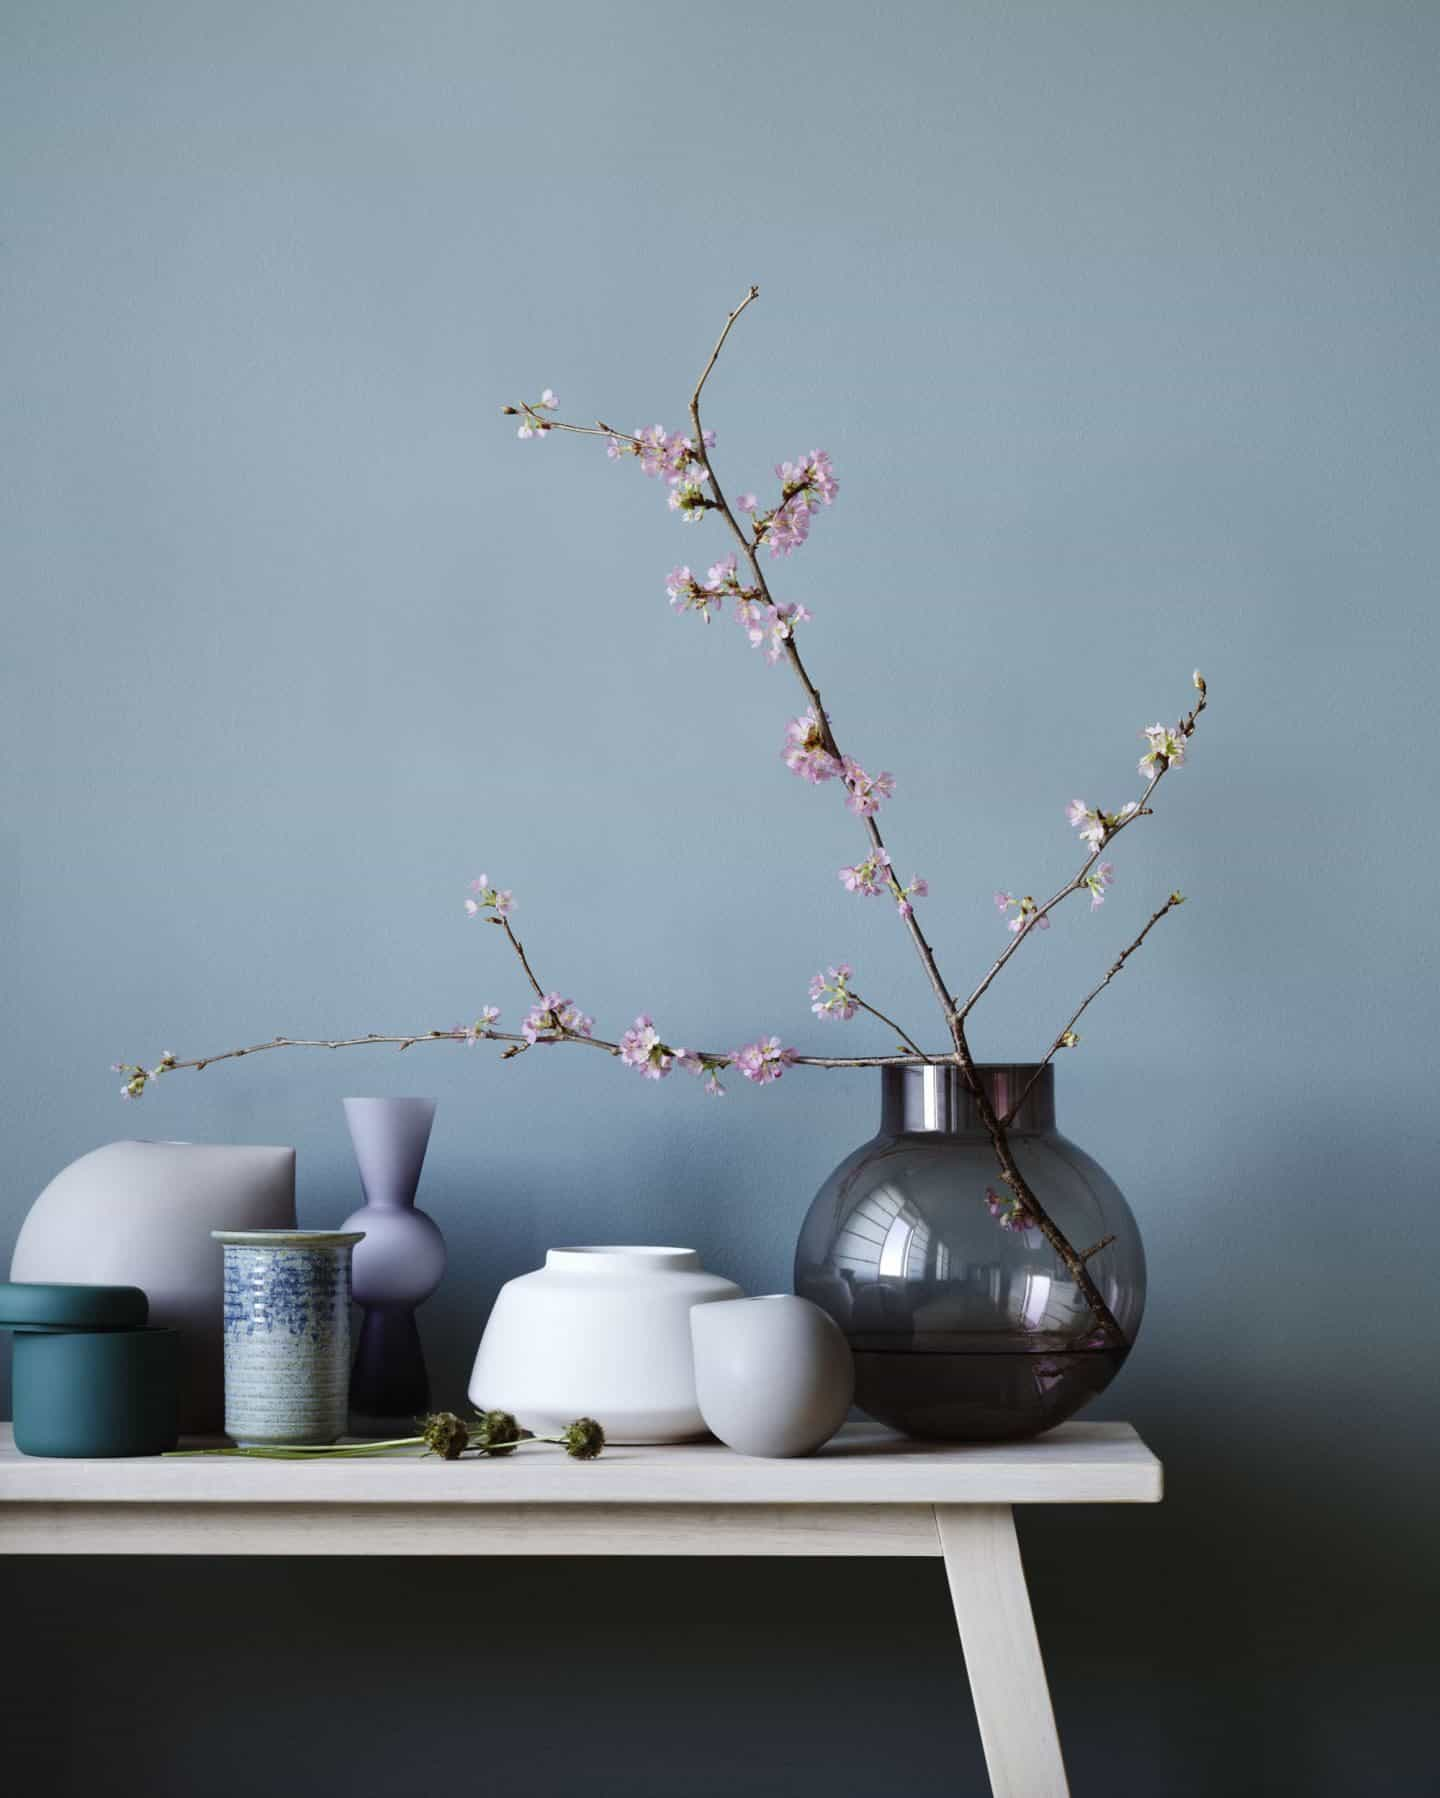 Japanese Style at Home Book Review - Ikebana, or the Japanese art of flower arranging, involves using as few stems as possible and arranging them asymmetrically to best highlight their natural beauty